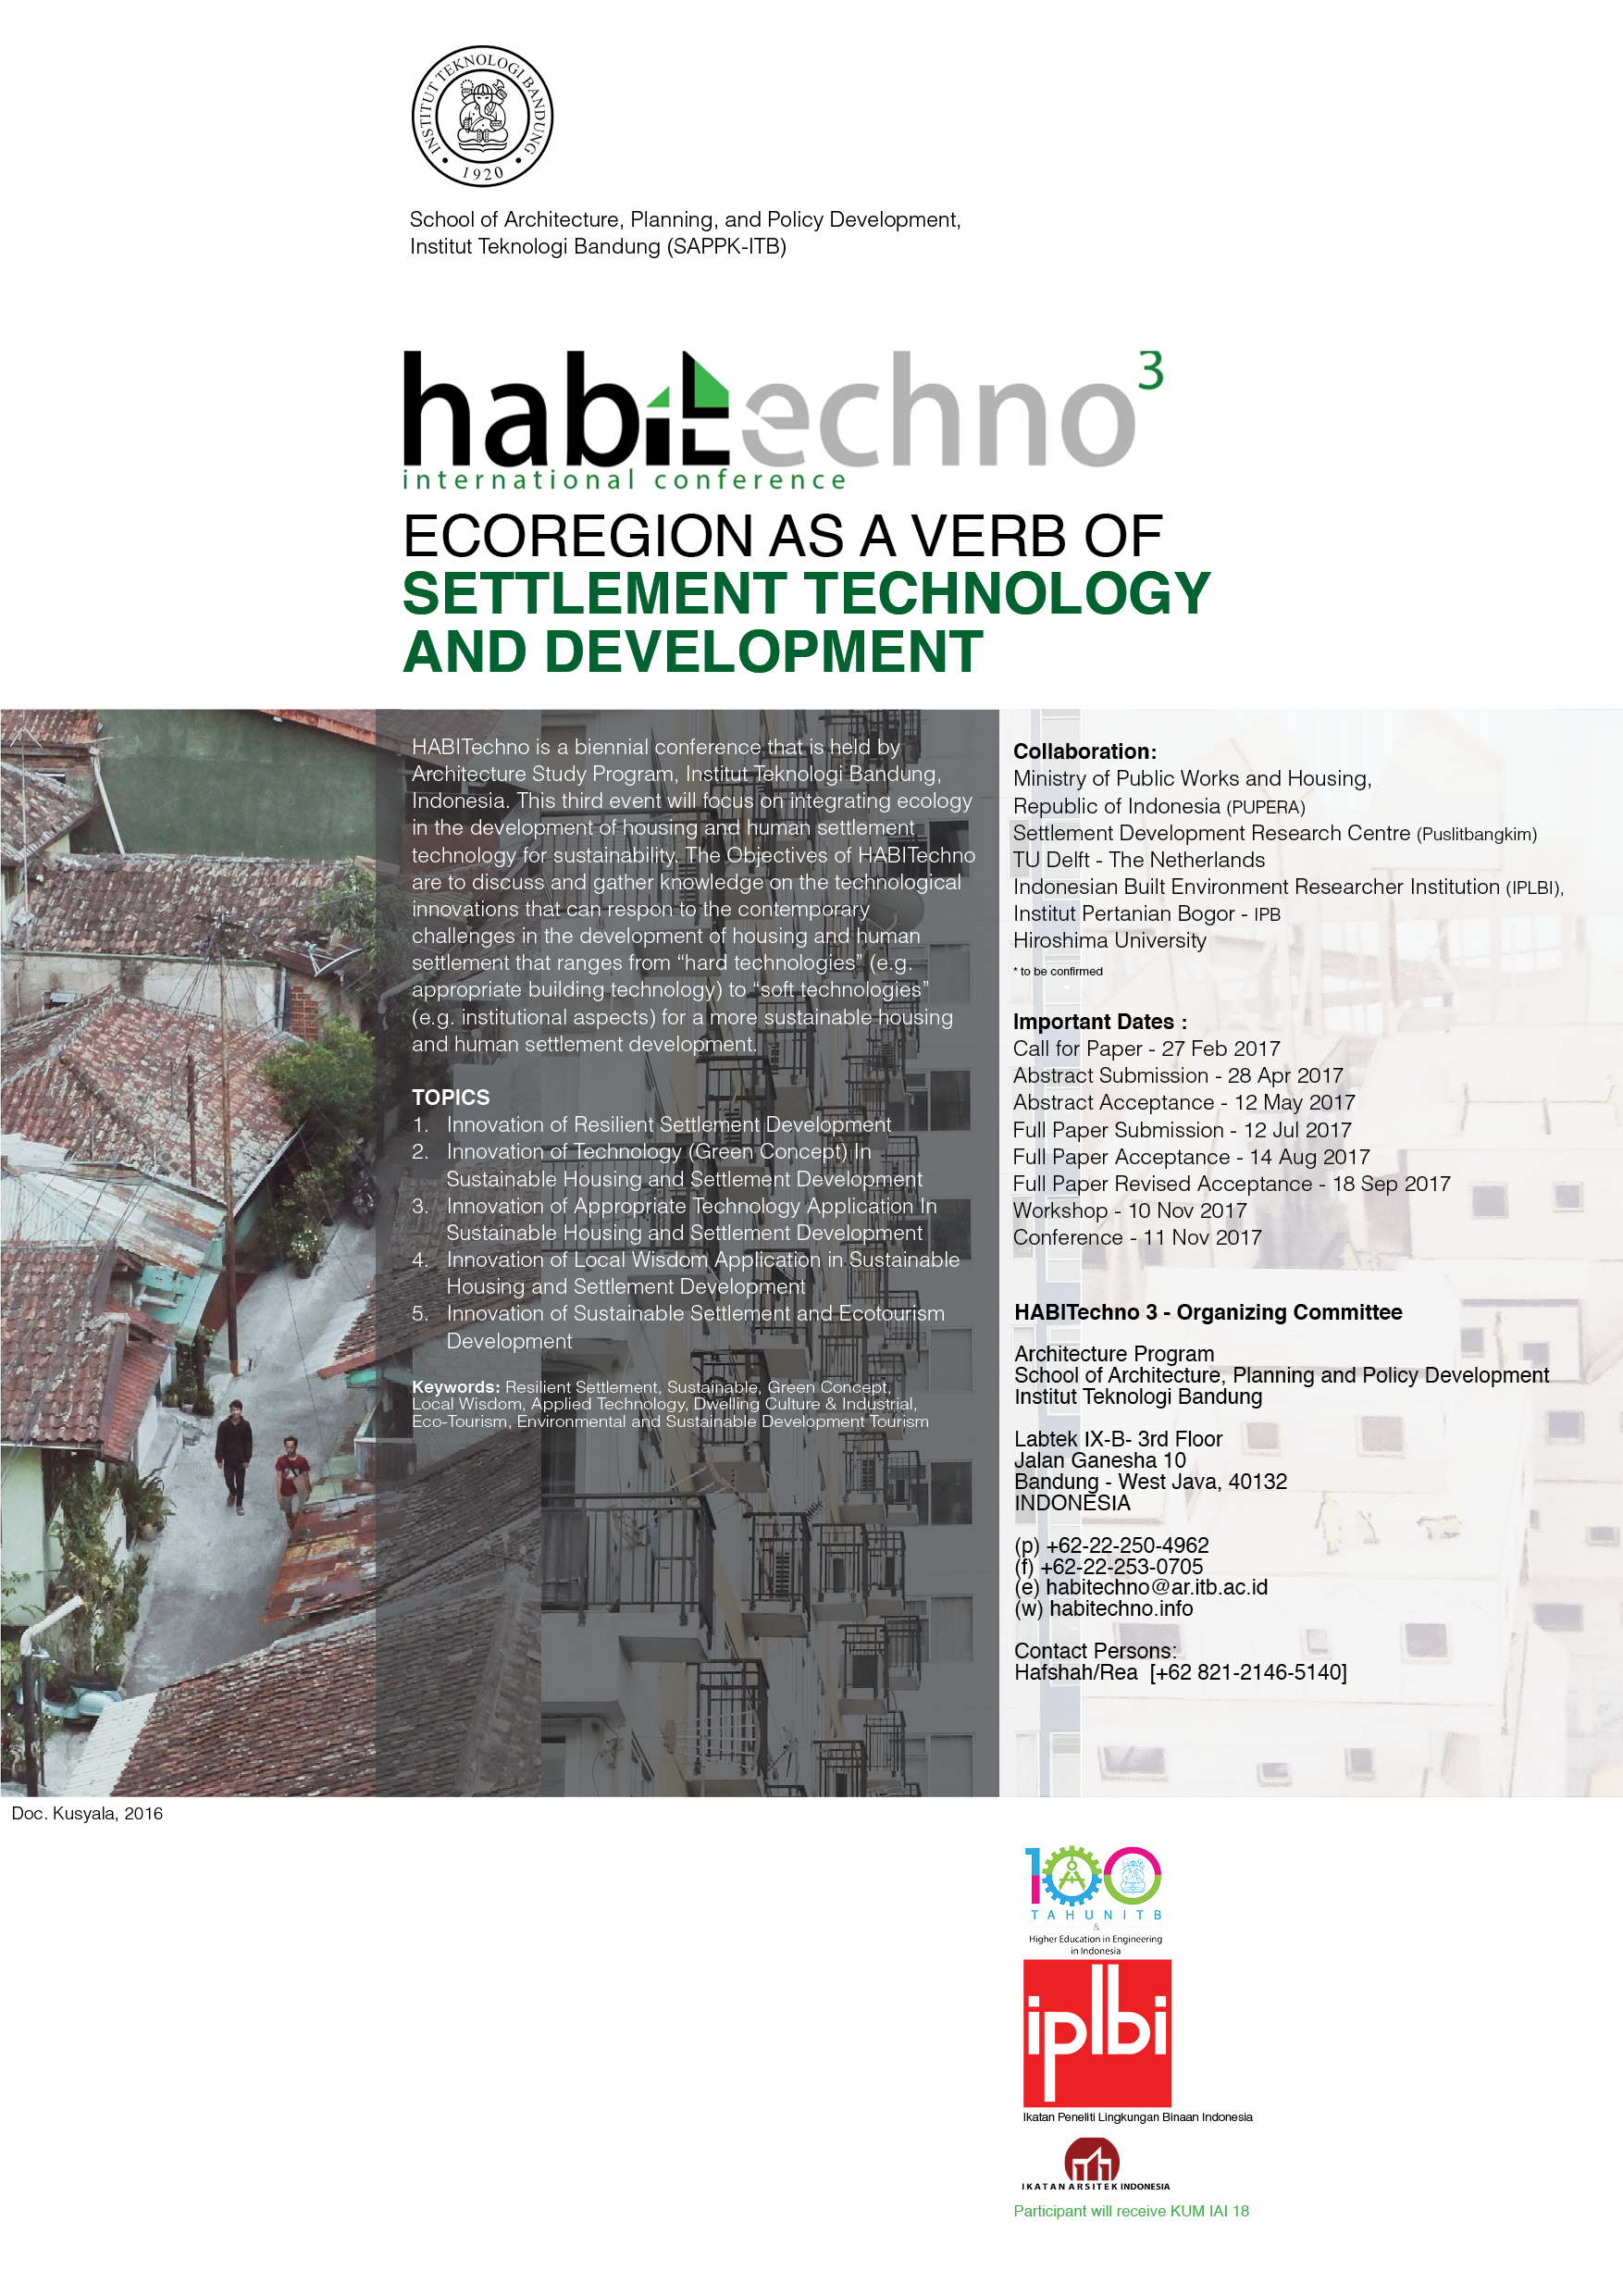 HABITechno: Ecoregion as a Verb of Settlement Technology and Development